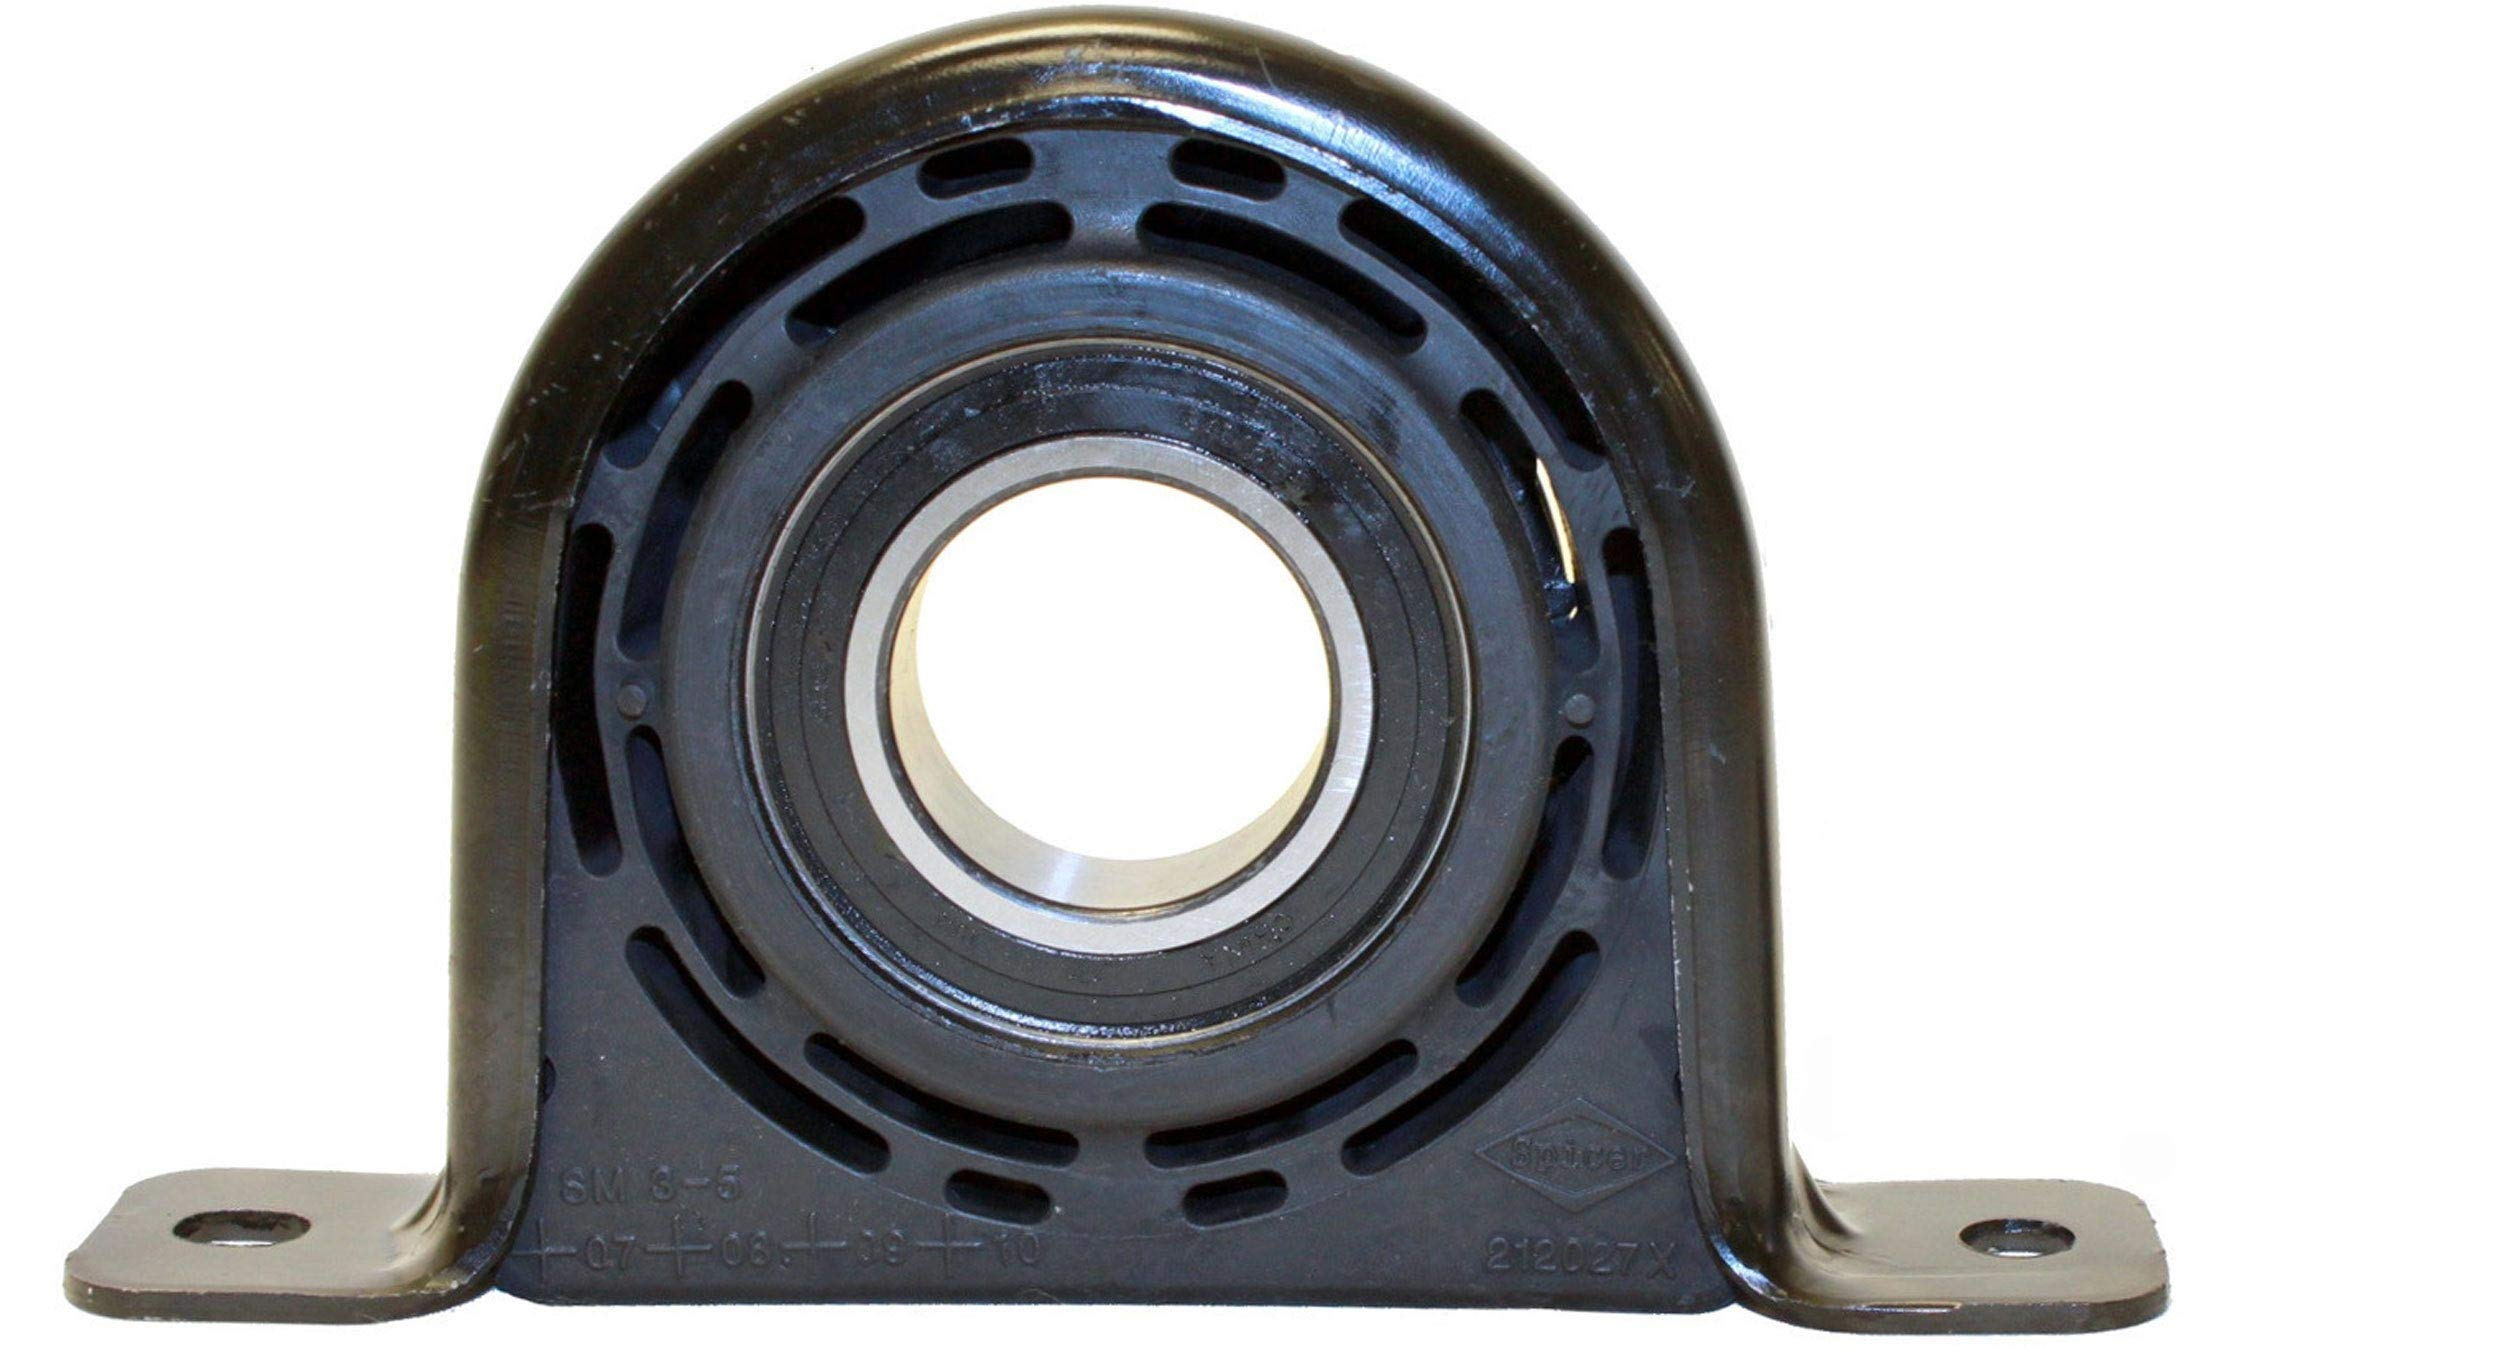 APDTY 140088 Driveshaft Center Support Bearing Fits 2005-2015 Nissan Titan 2WD